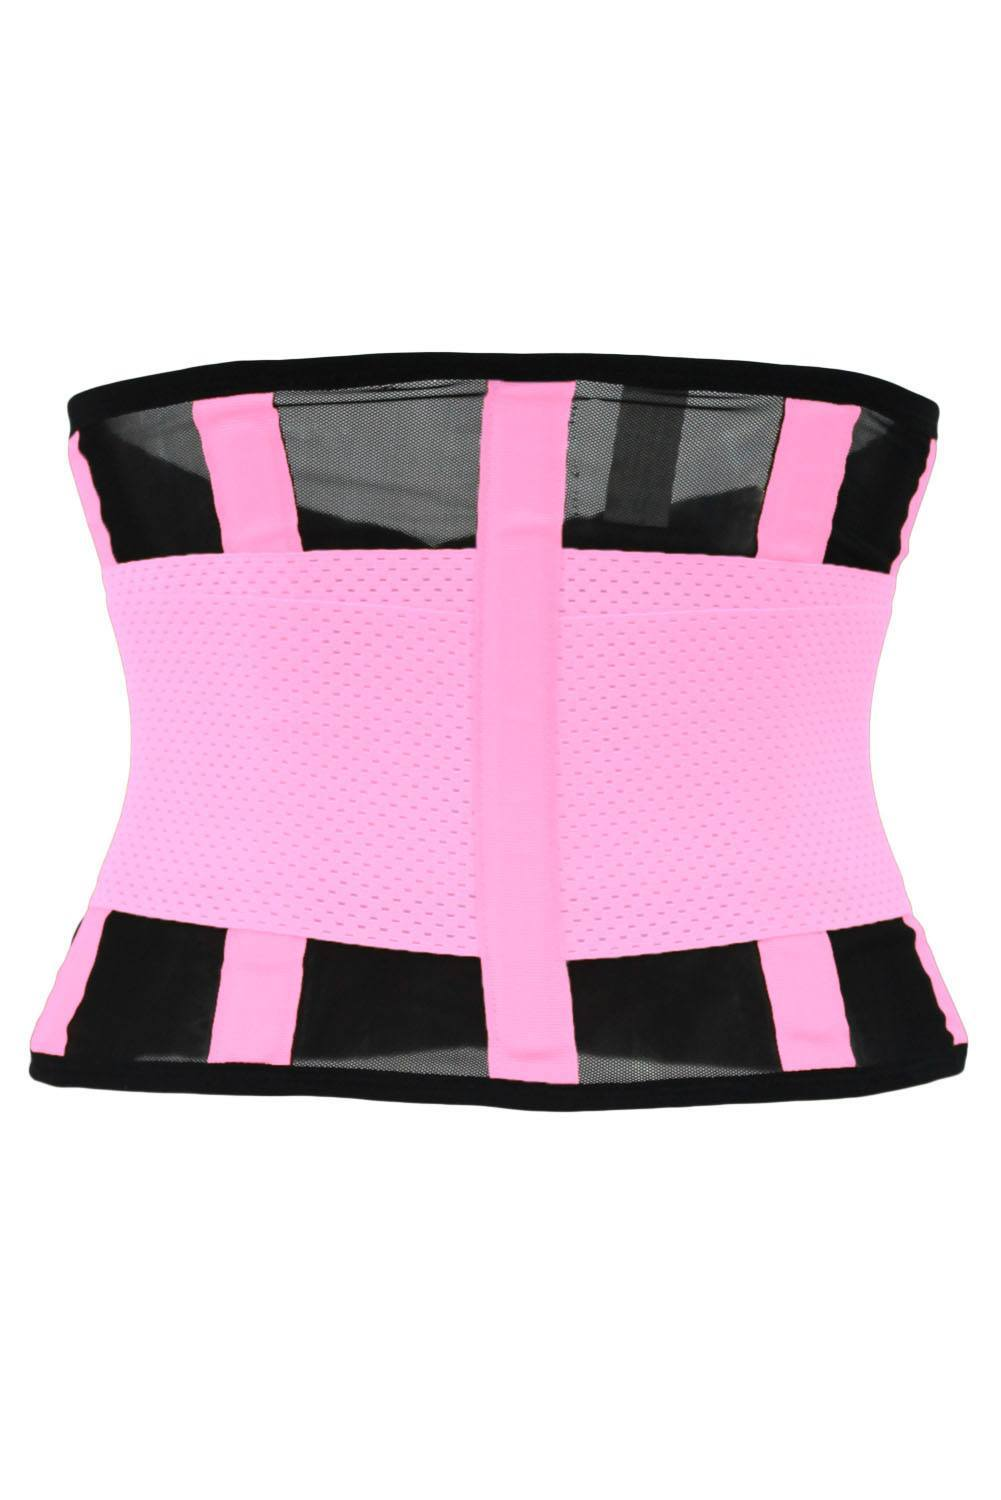 Power Belt And Waist Trainer Pink - Fashion Effect Store  - 2